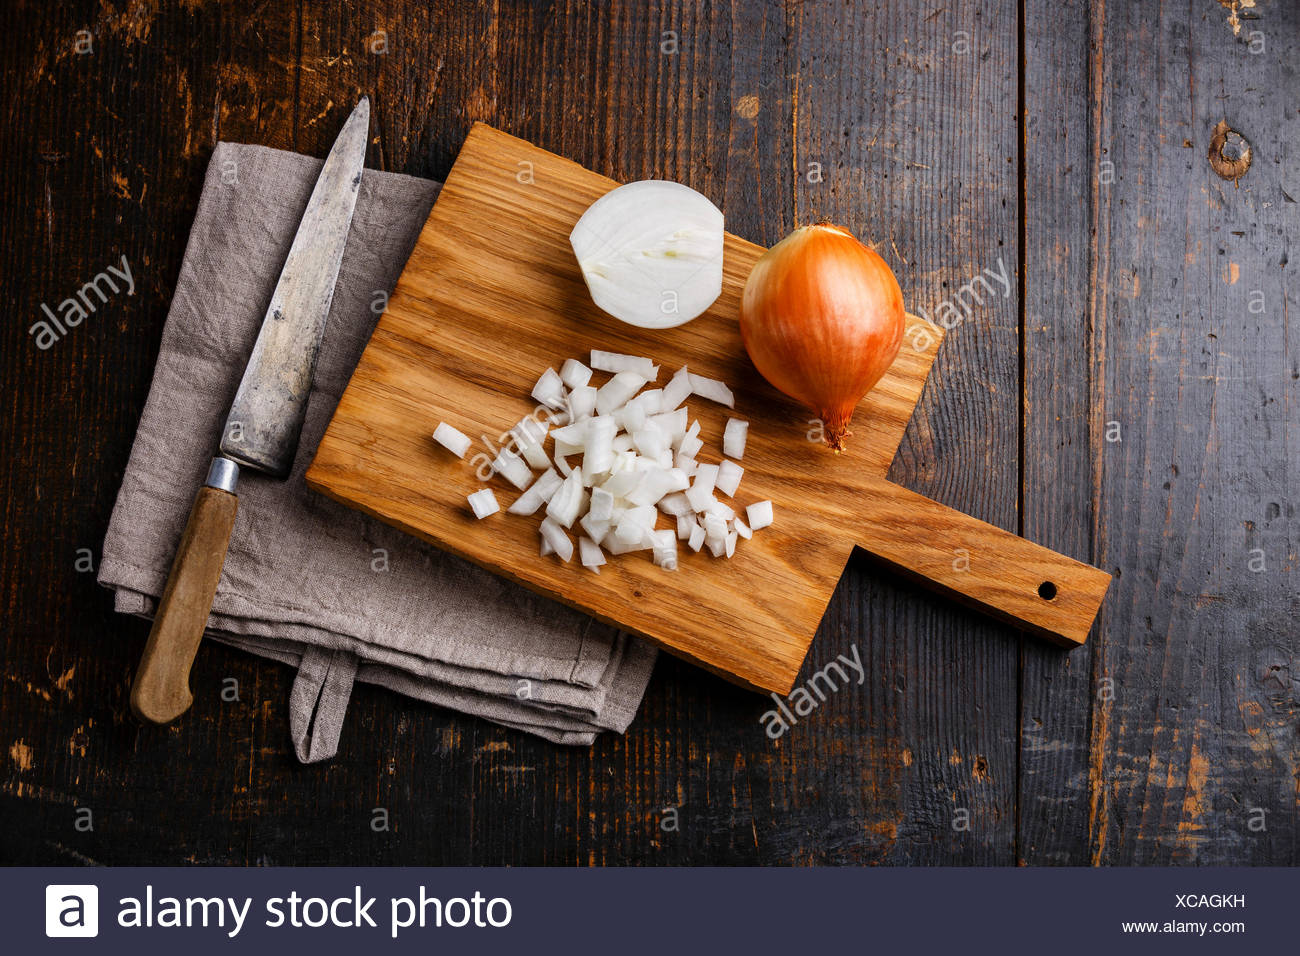 Chopped Onion On Wooden Cutting Board And Kitchen Knife